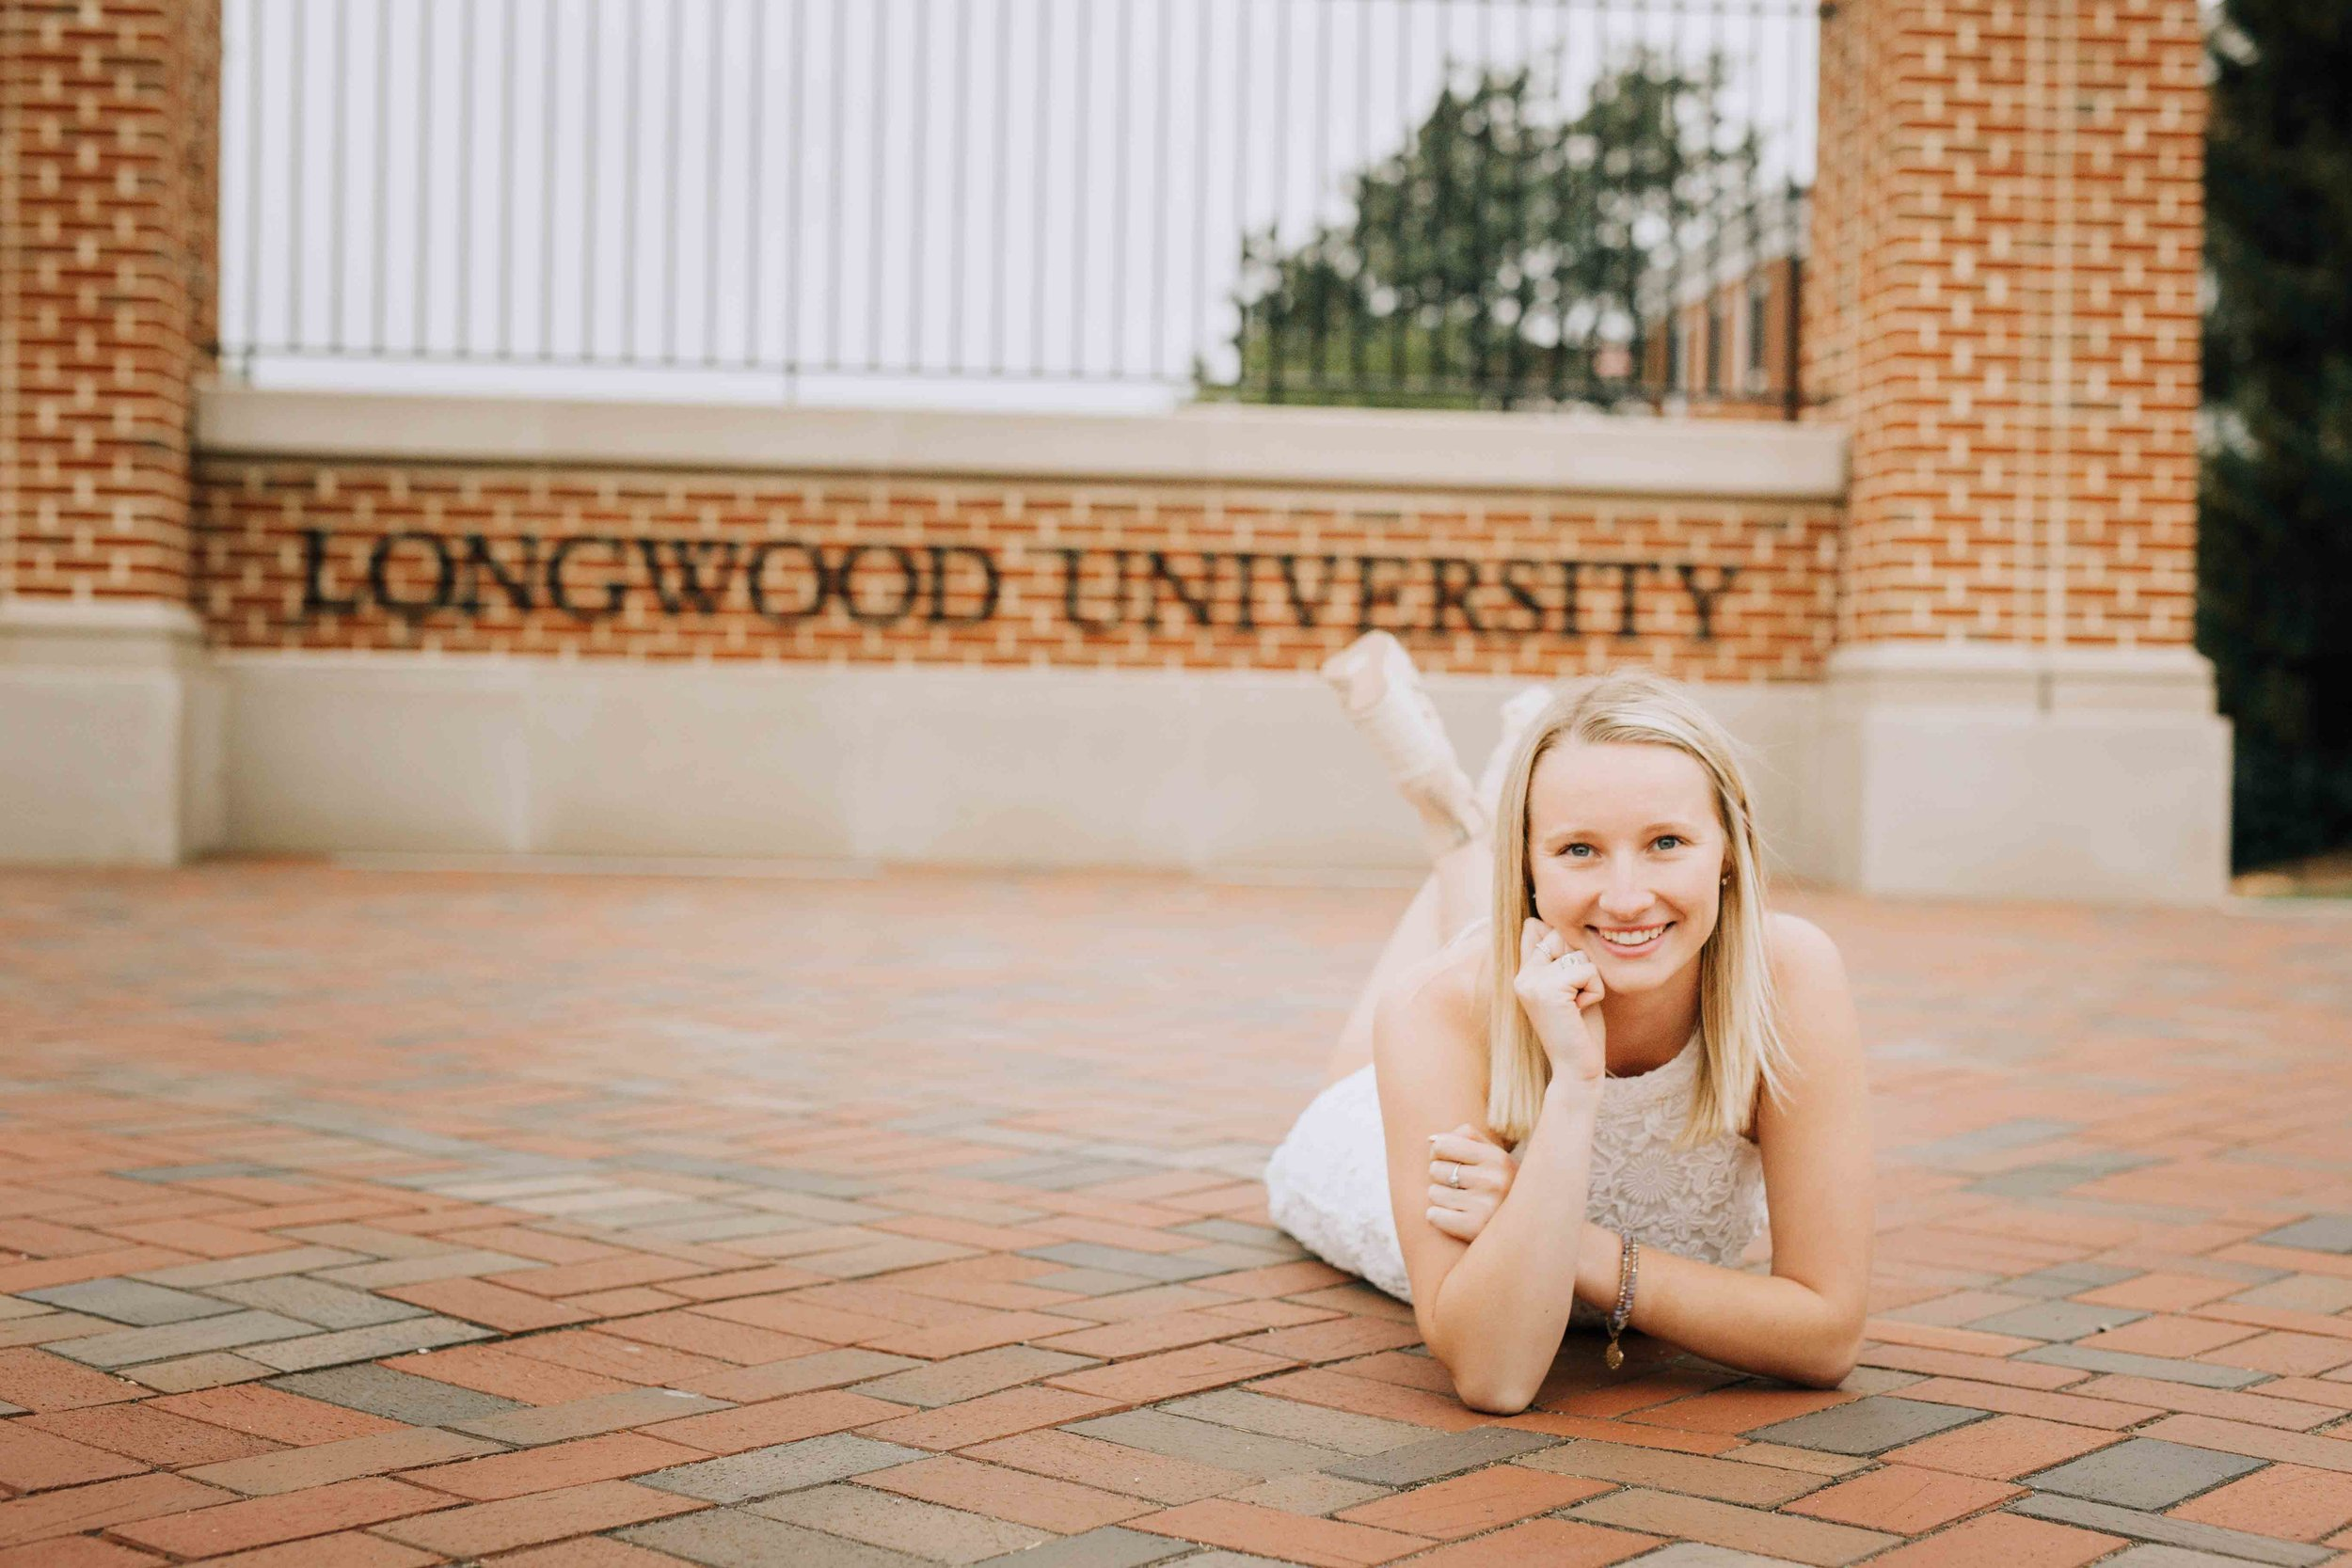 Longwood-Senior-Graduate-Jacqueline-Waters-Photography-Farmville-Virginia- (250).jpg